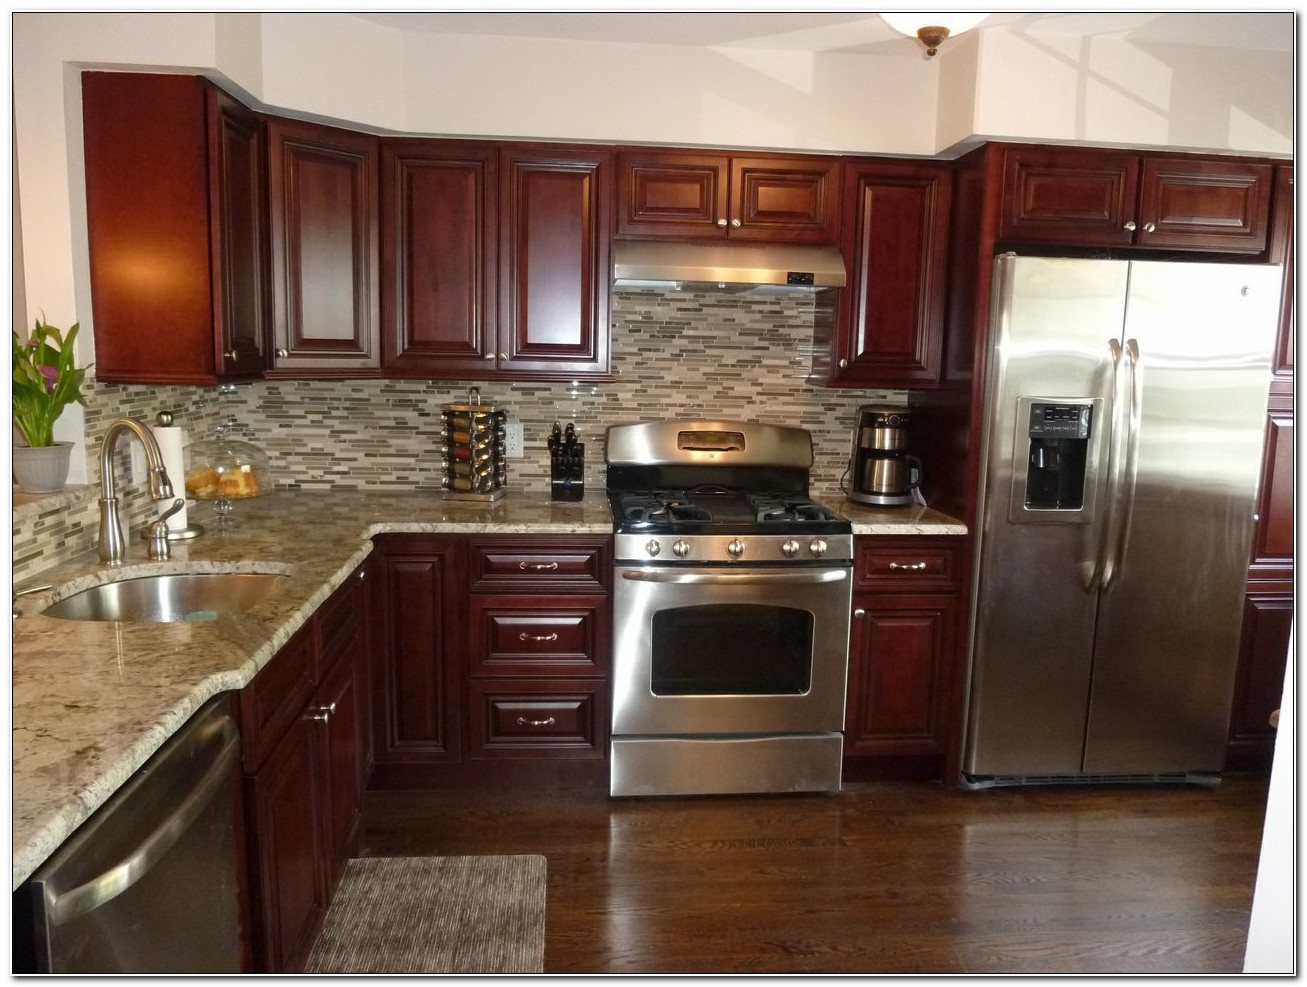 Mahogany Cabinets With Granite Countertops